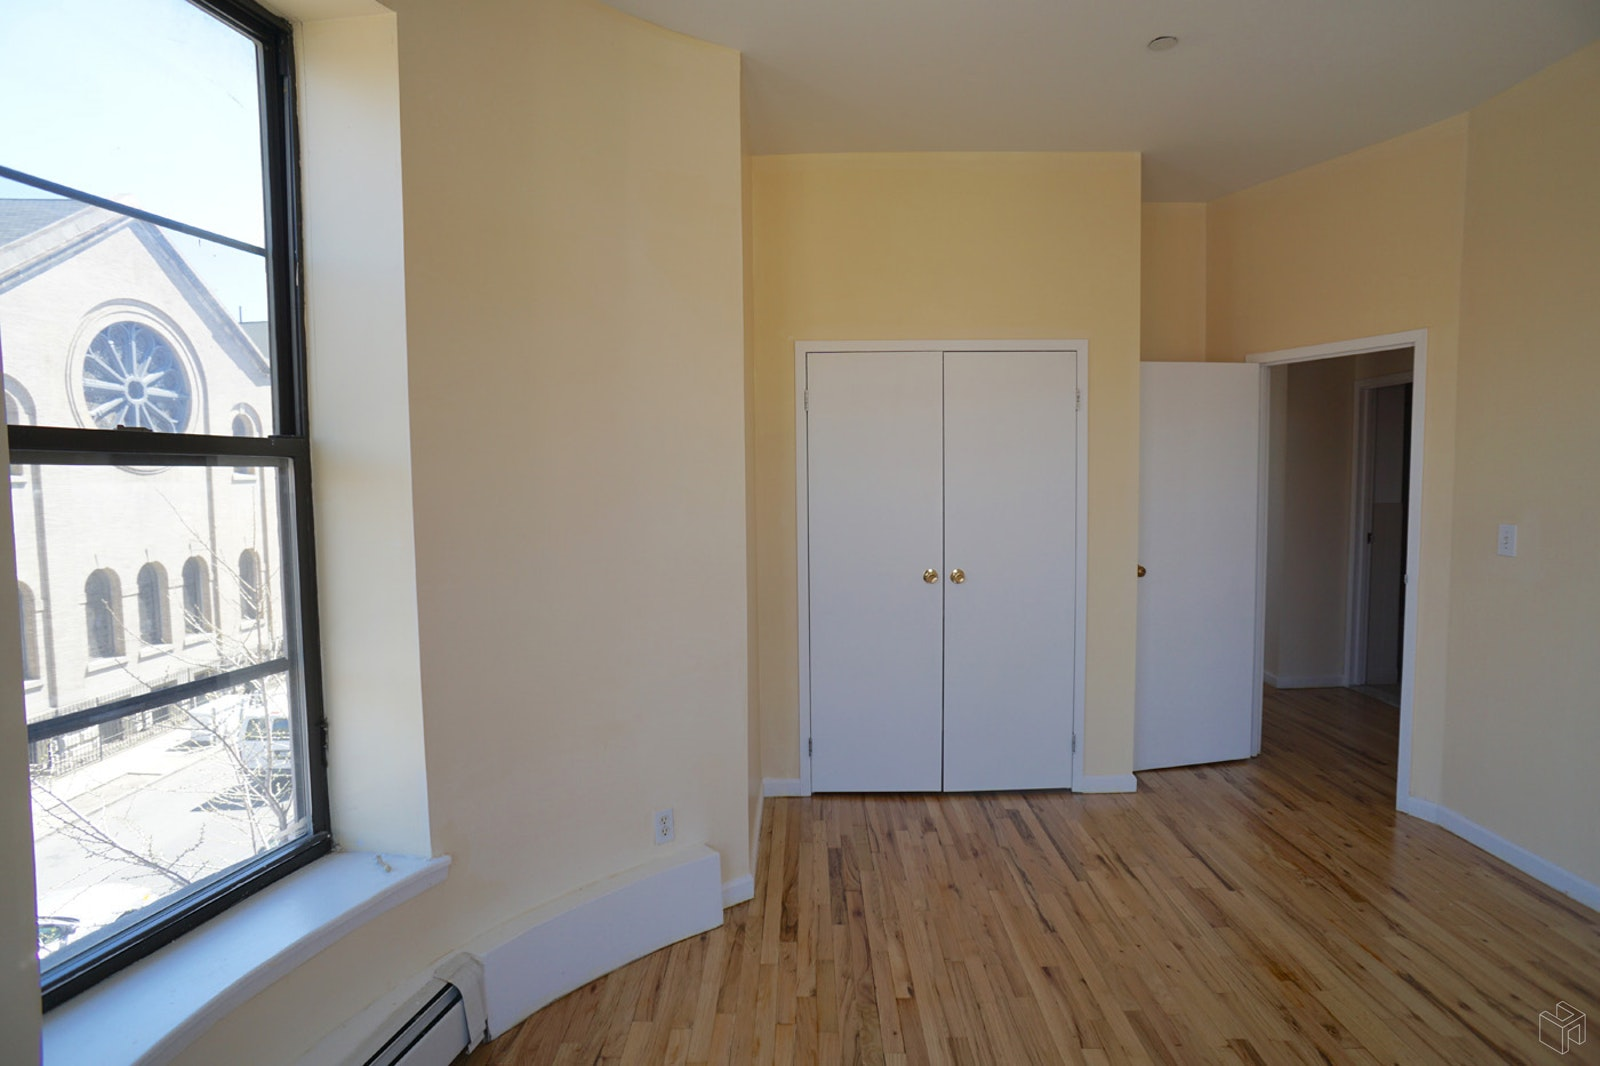 1192 DEAN STREET 2A, Crown Heights, $2,150, Web #: 19592747